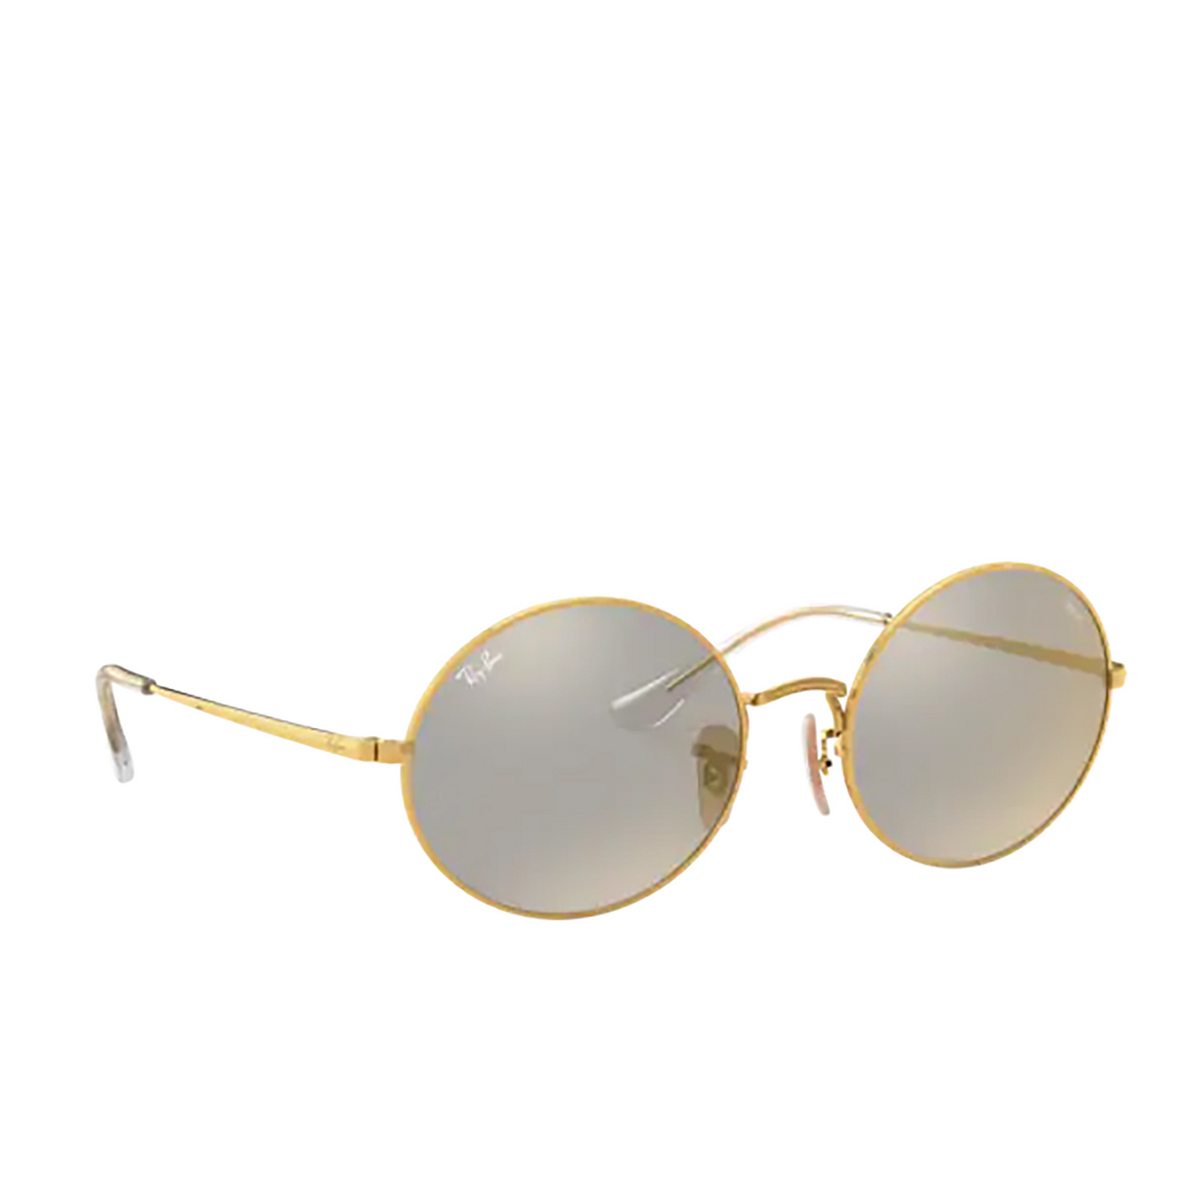 Ray-Ban® Oval Sunglasses: Oval RB1970 color Arista 001/B3 - three-quarters view.